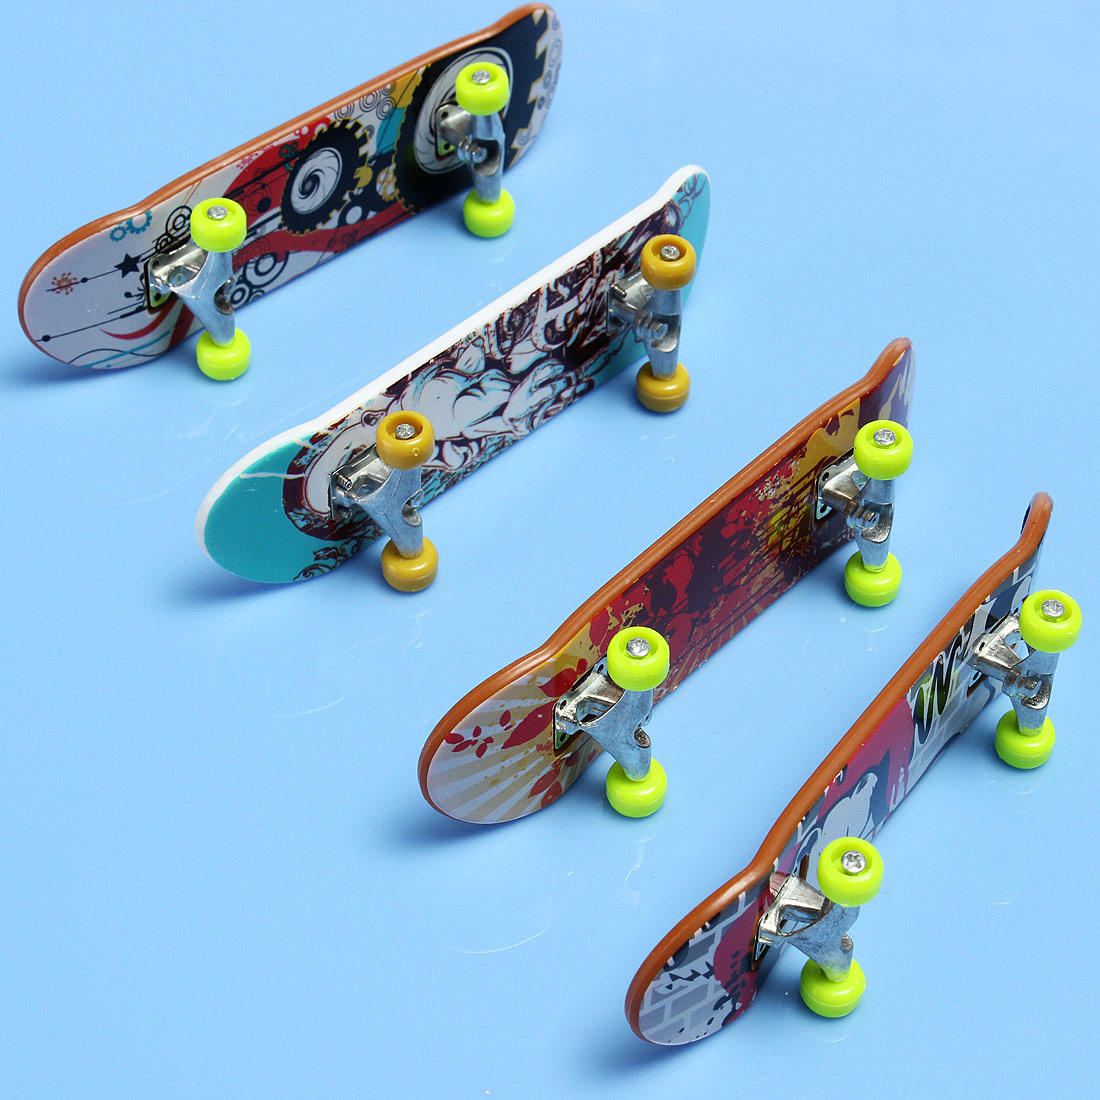 Finger Board Tech Deck Truck Skateboard Boy Kid